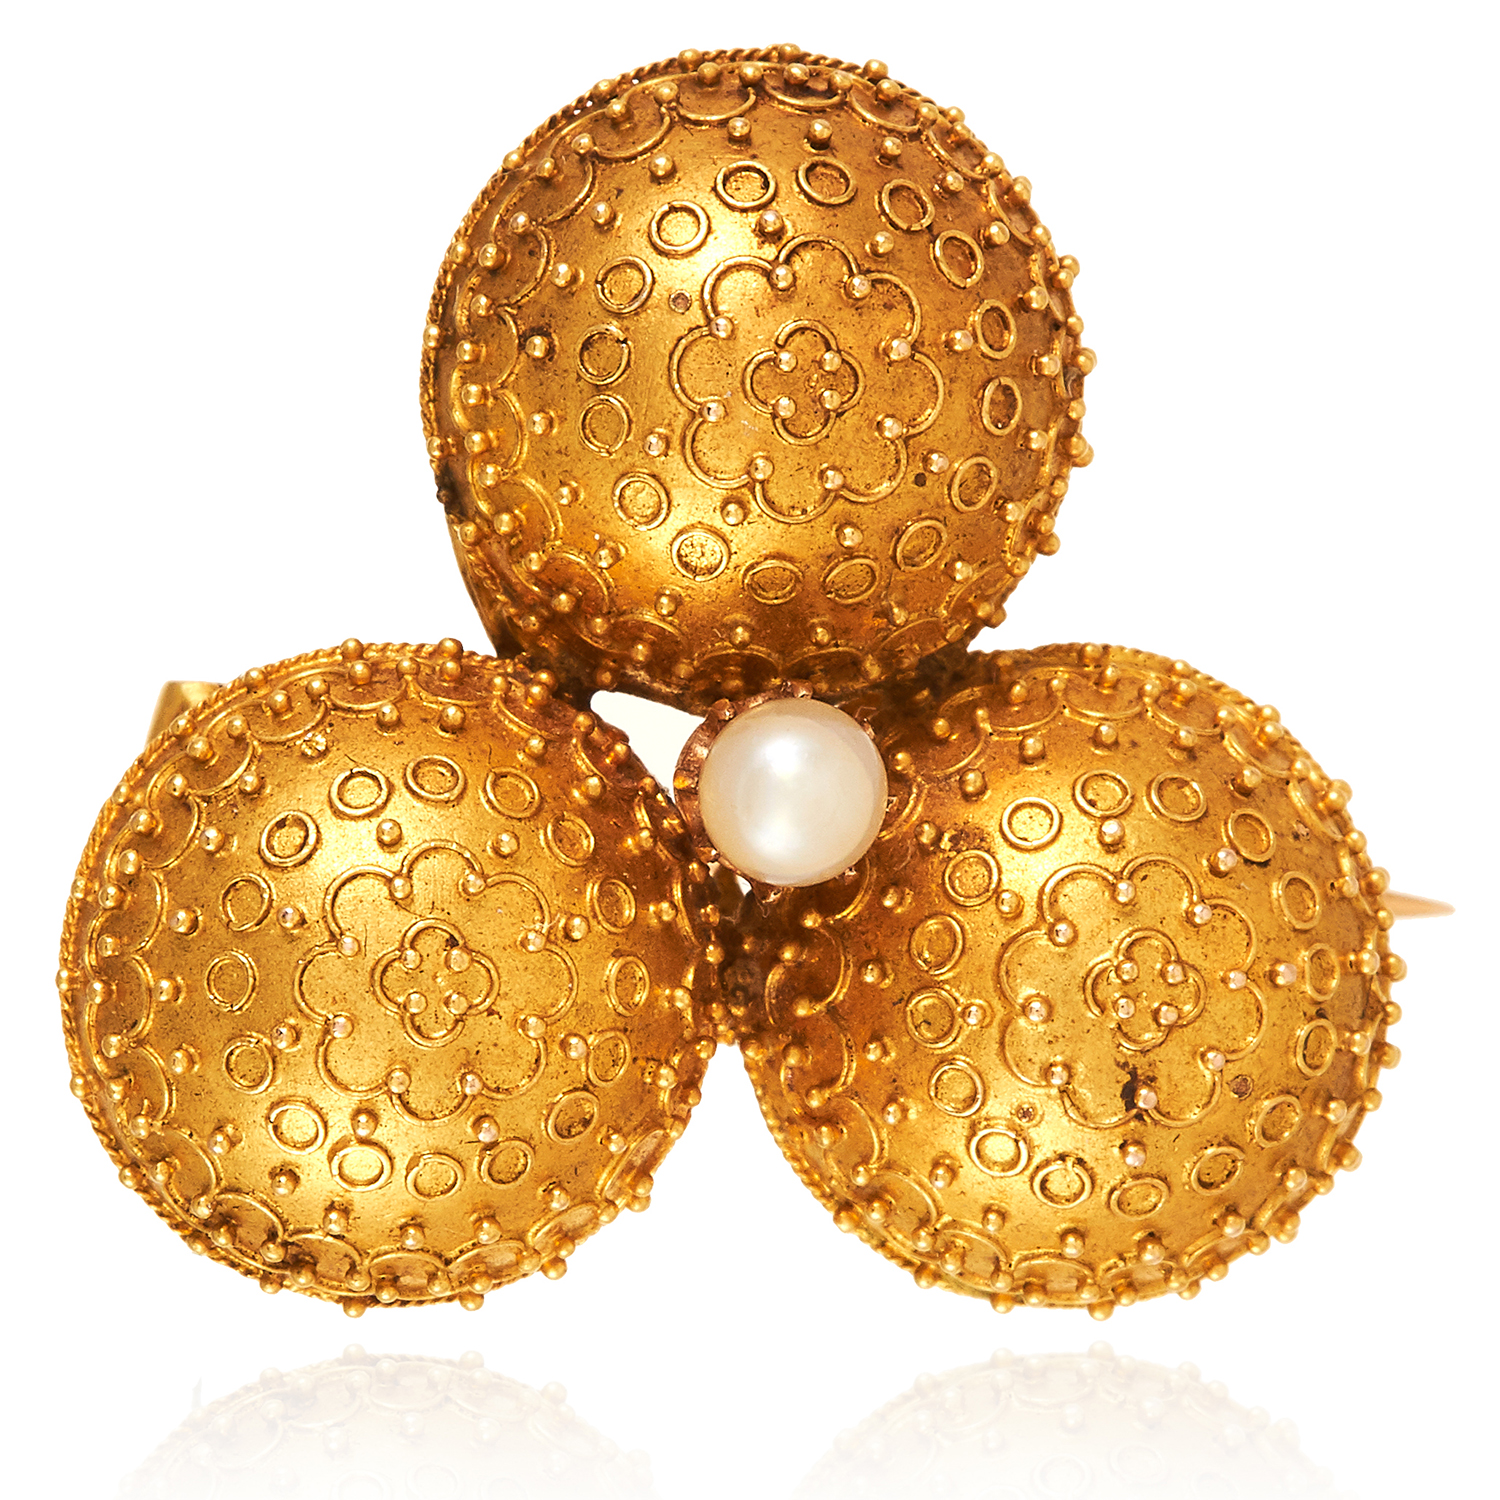 Los 57 - AN ANTIQUE ETRUSCAN REVIVAL PEARL CLOVER BROOCH, 19TH CENTURY in high carat yellow gold, the trefoil